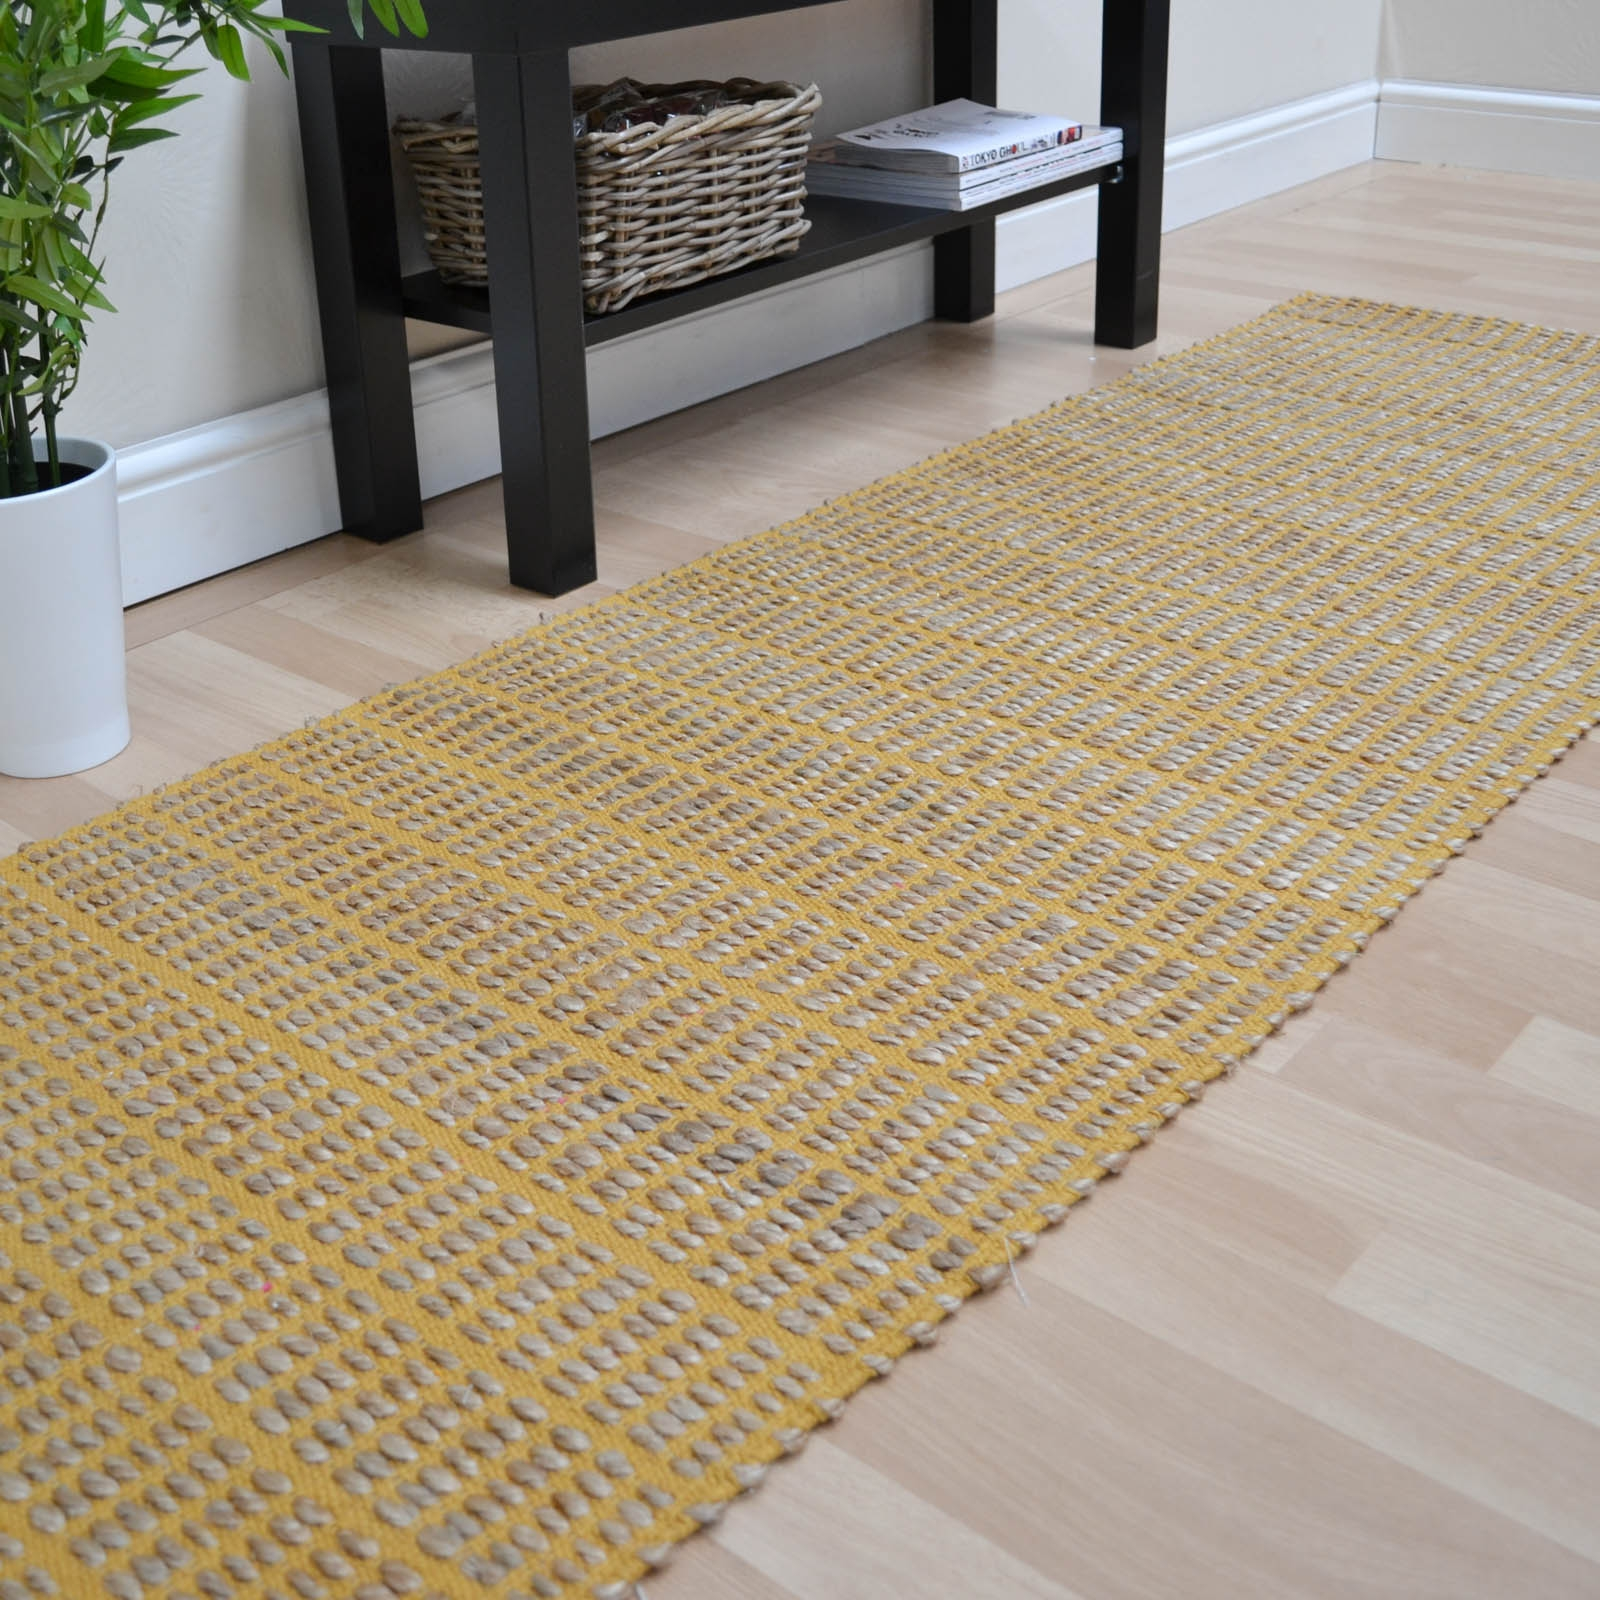 Hall Rugs Uk Roselawnlutheran Inside Runner Hallway Rugs (#13 of 20)